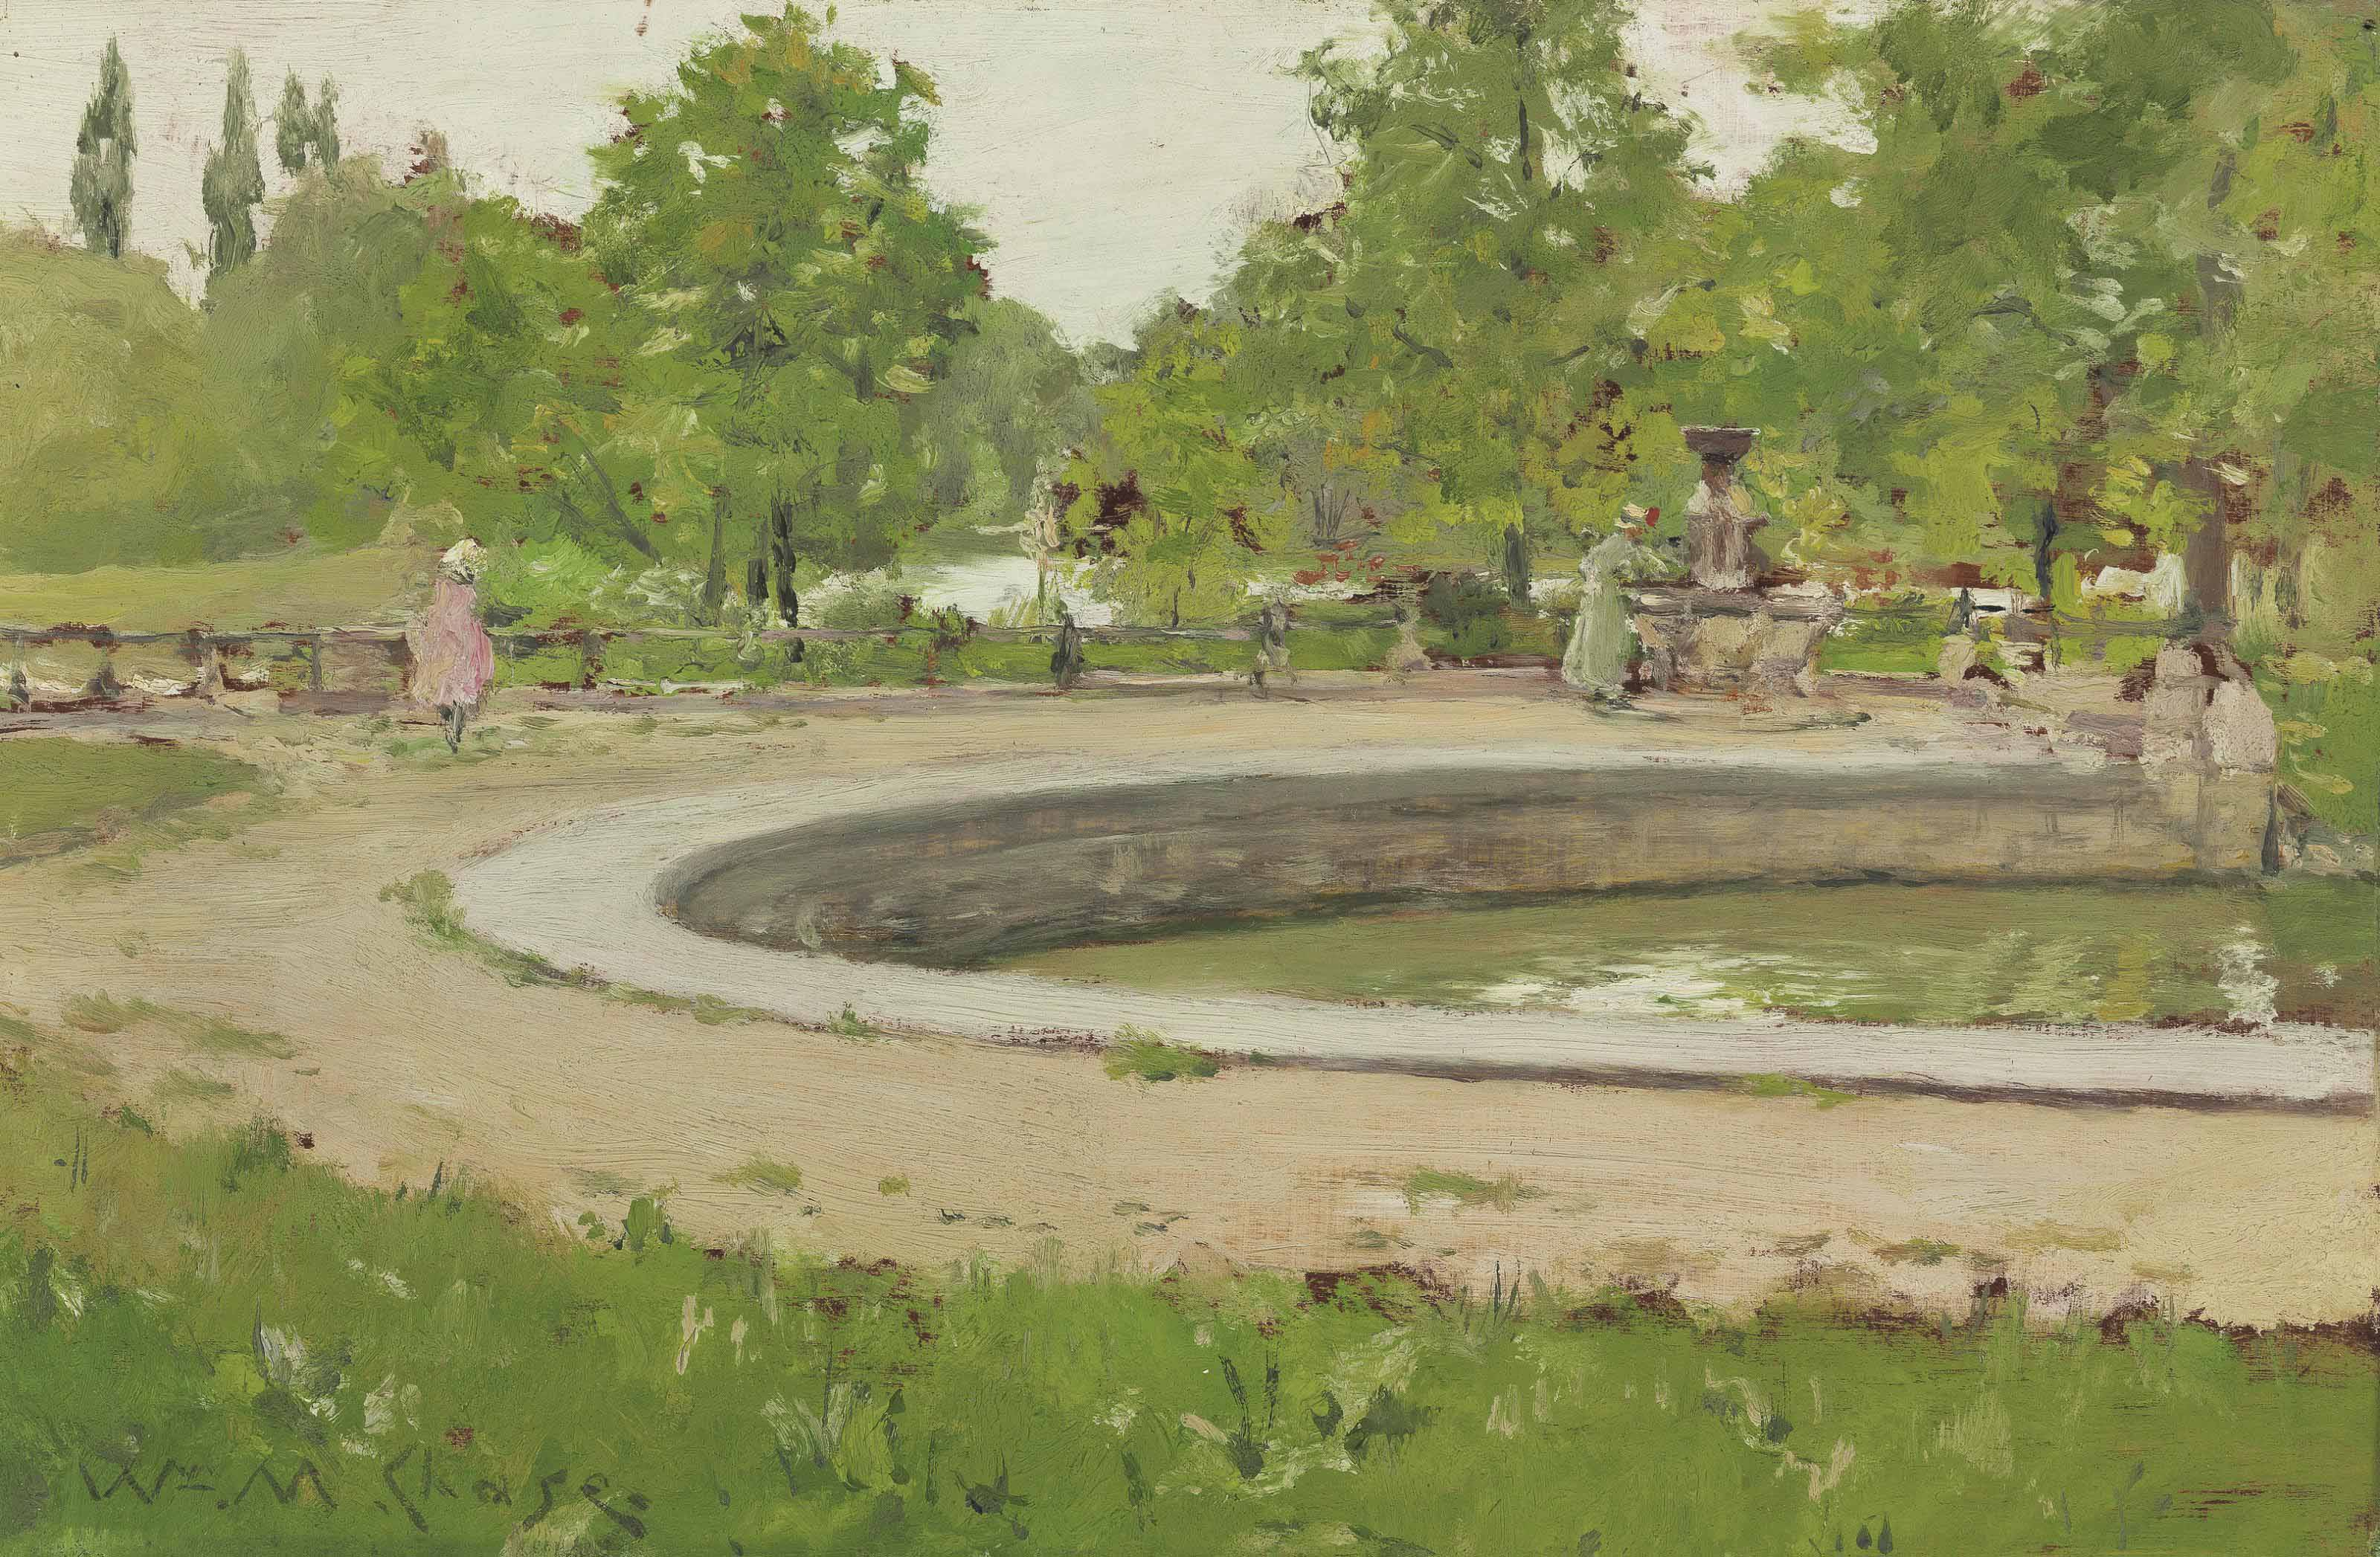 A Water Fountain in Prospect Park